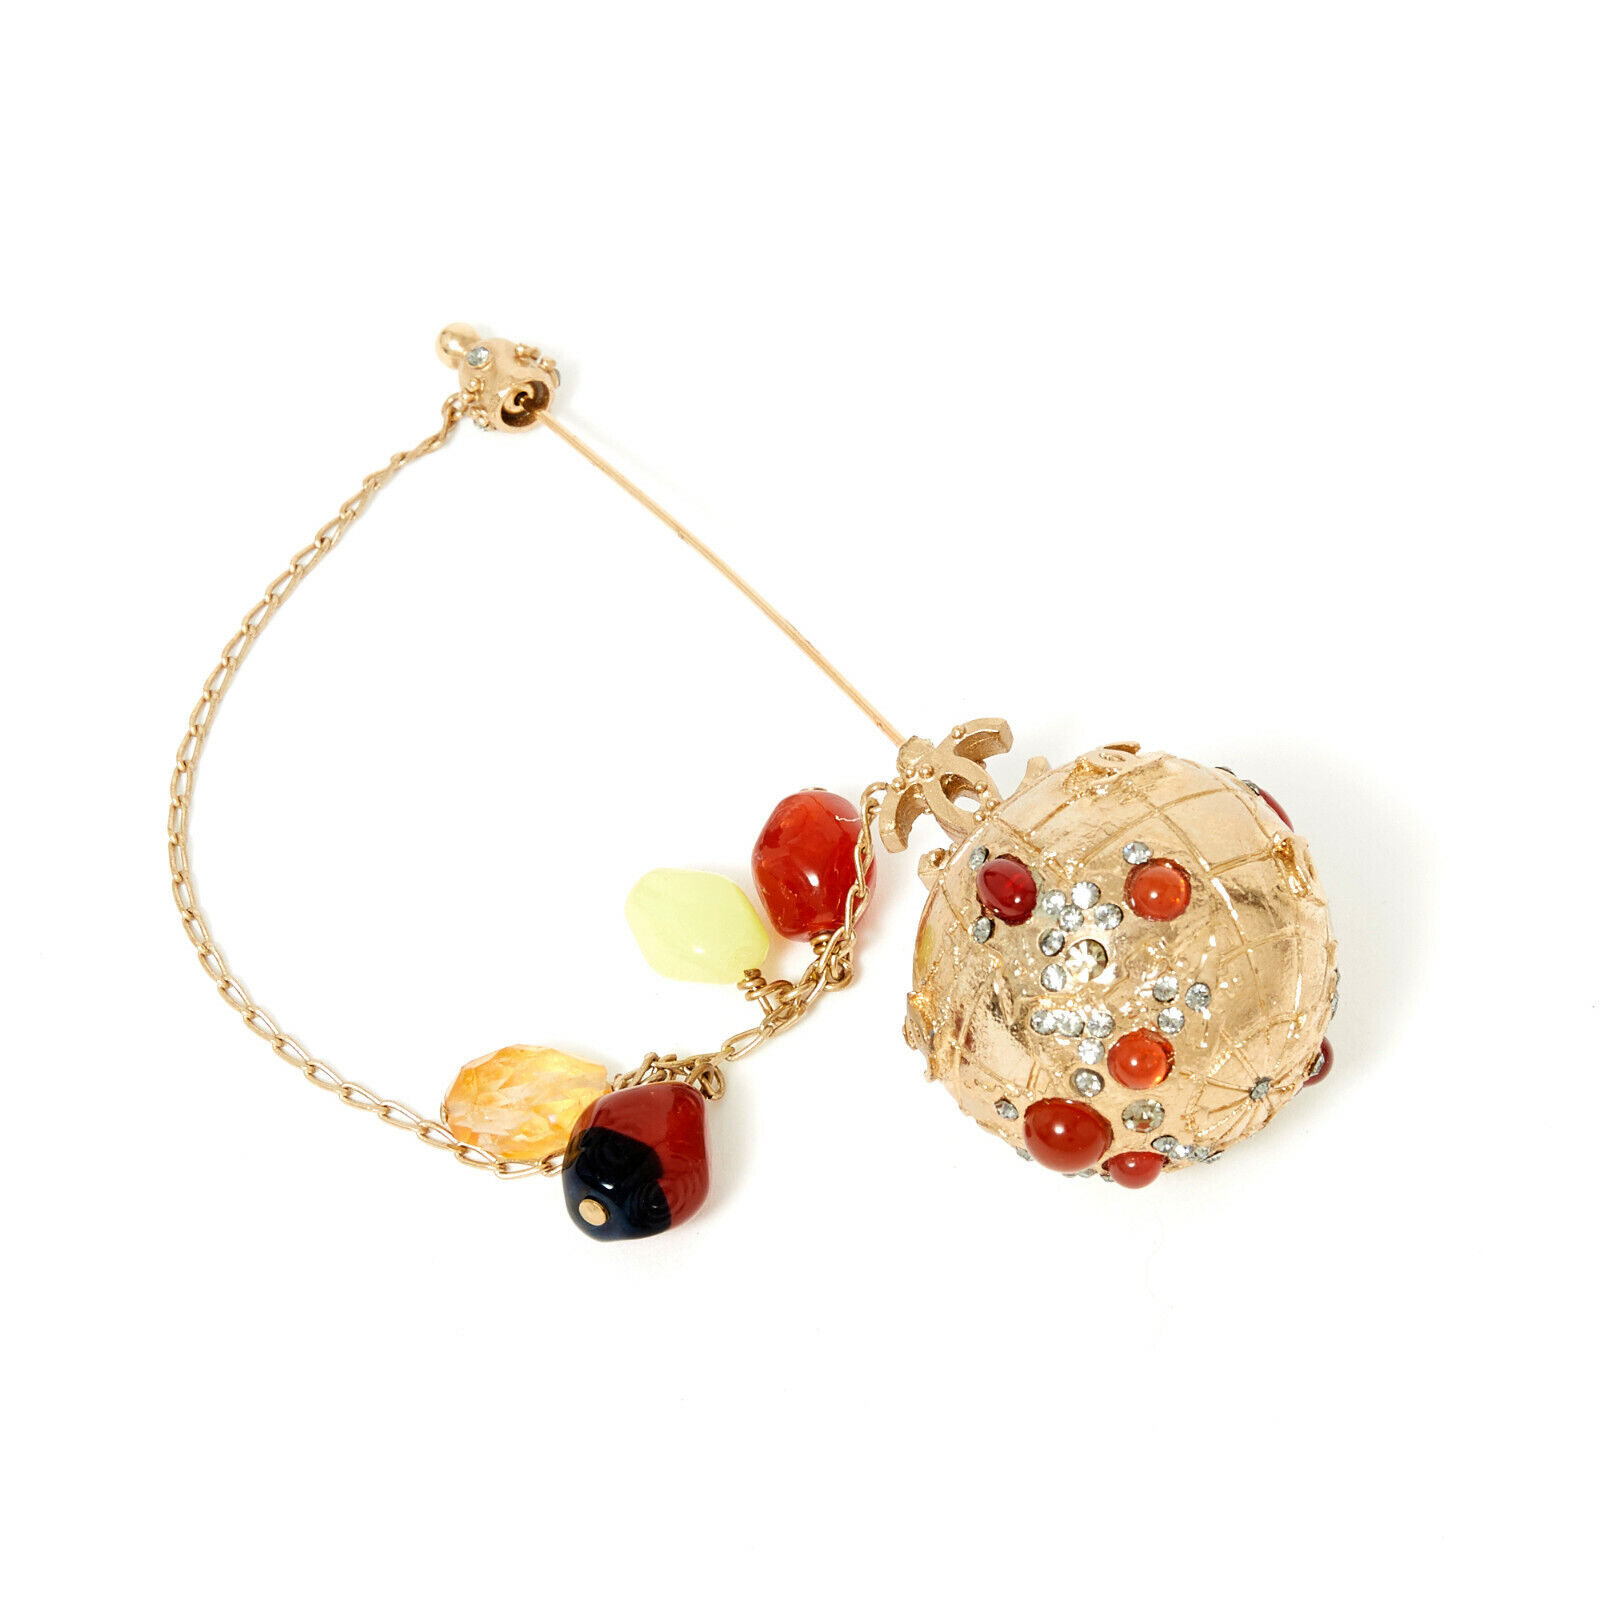 Chanel broche brooch collection monde ss 2004